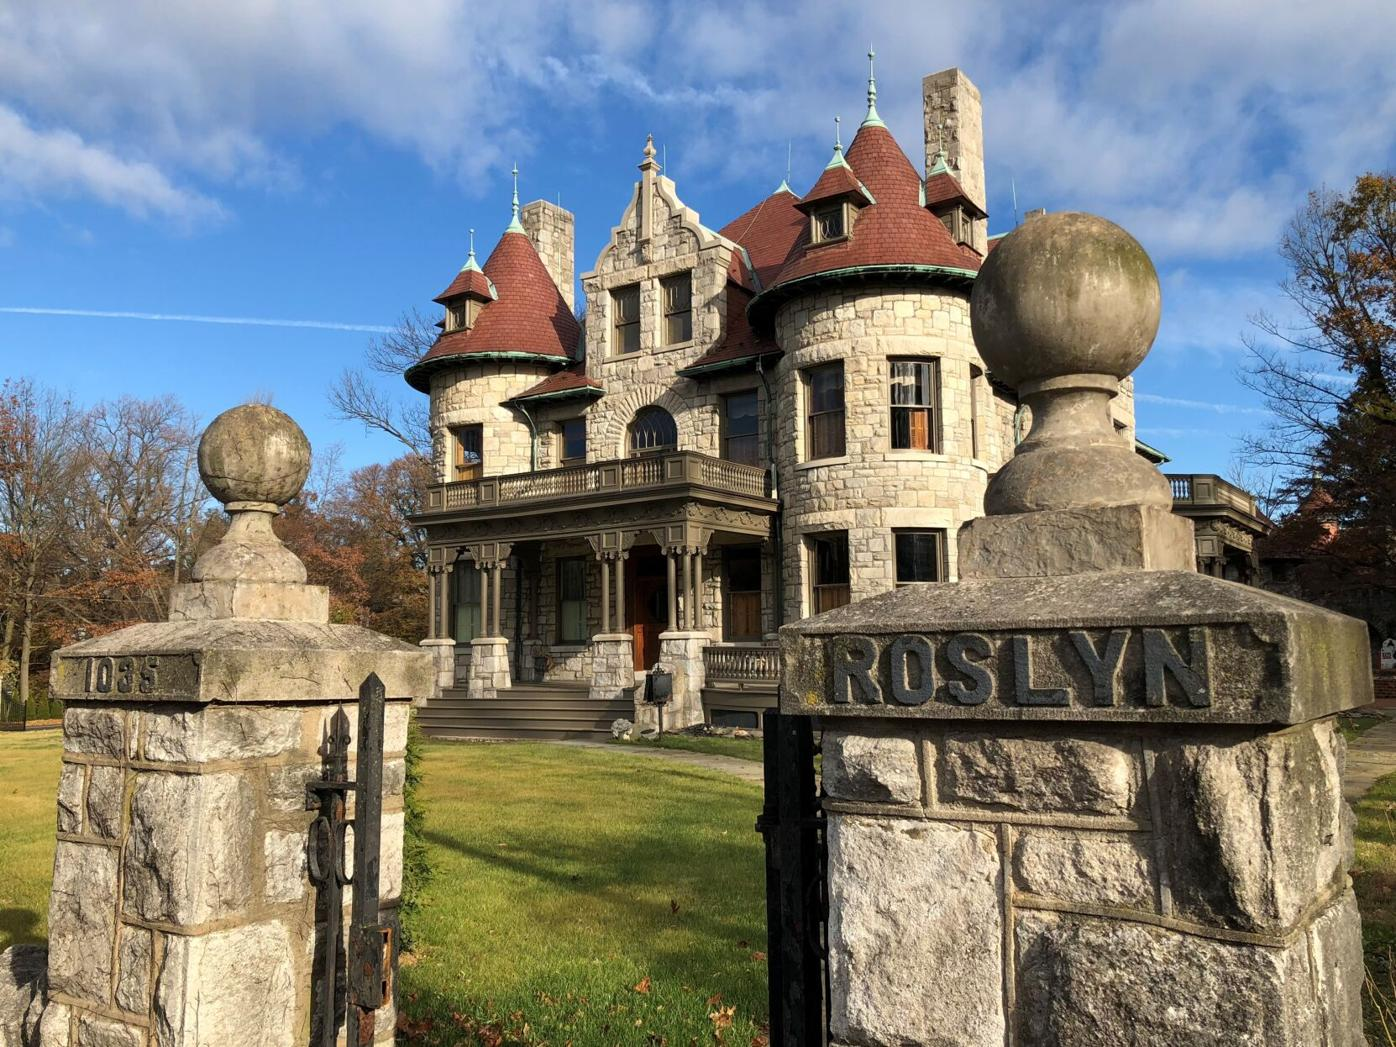 HG Architecture col J10 Roslyn, Peter T Watt Mansion 1896 C Emlen Urban with Avondale stone, towers, dormers and finials.jpg